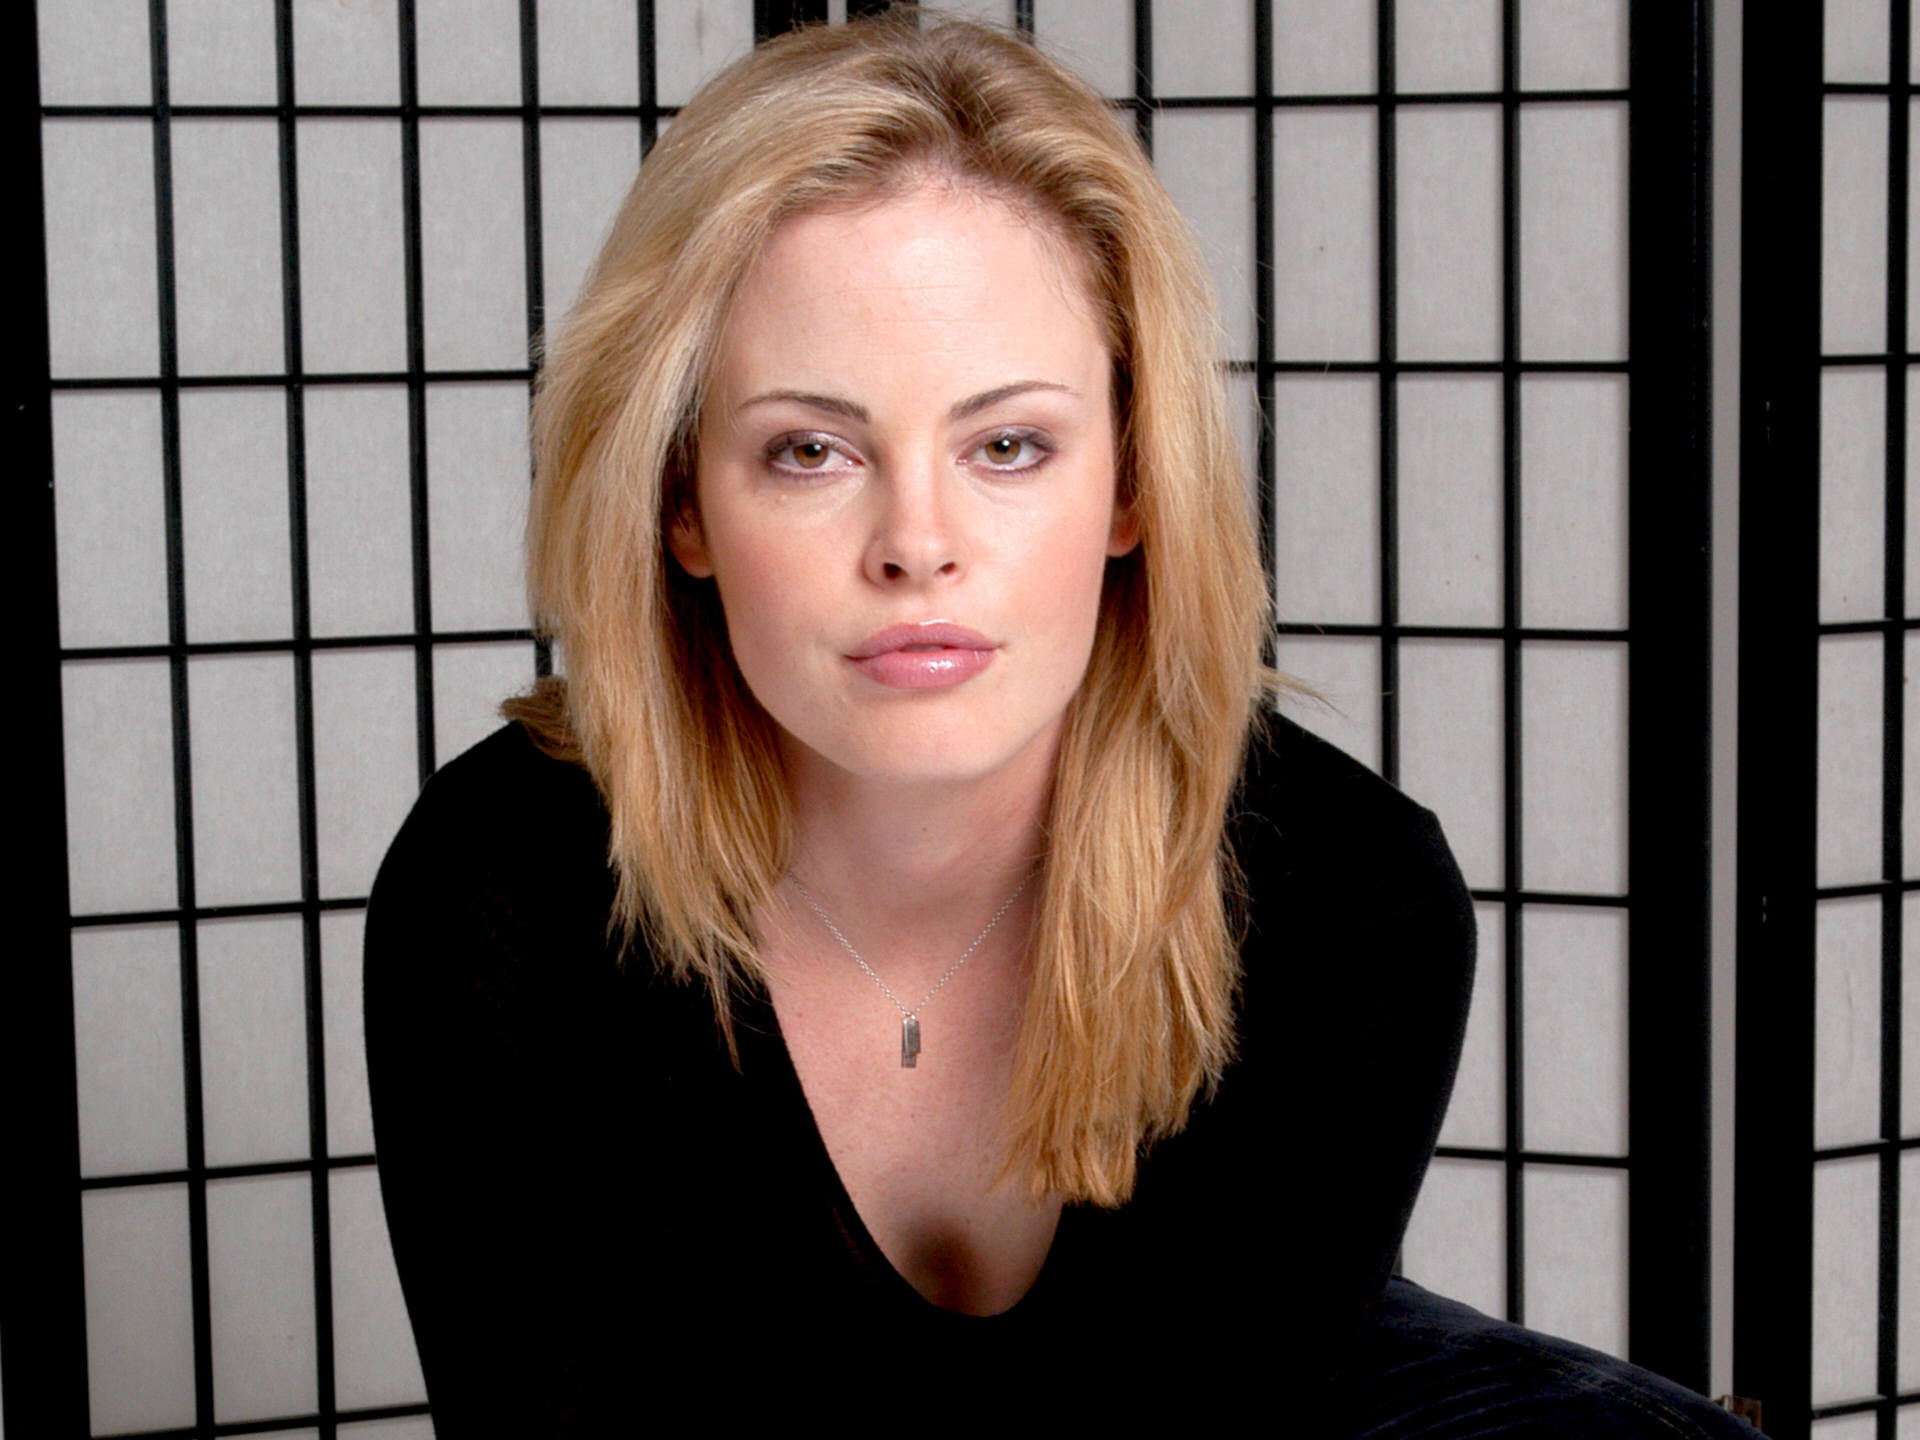 Photo of the confident charming  Chandra West from Edmonton, Alberta, Canada without makeup